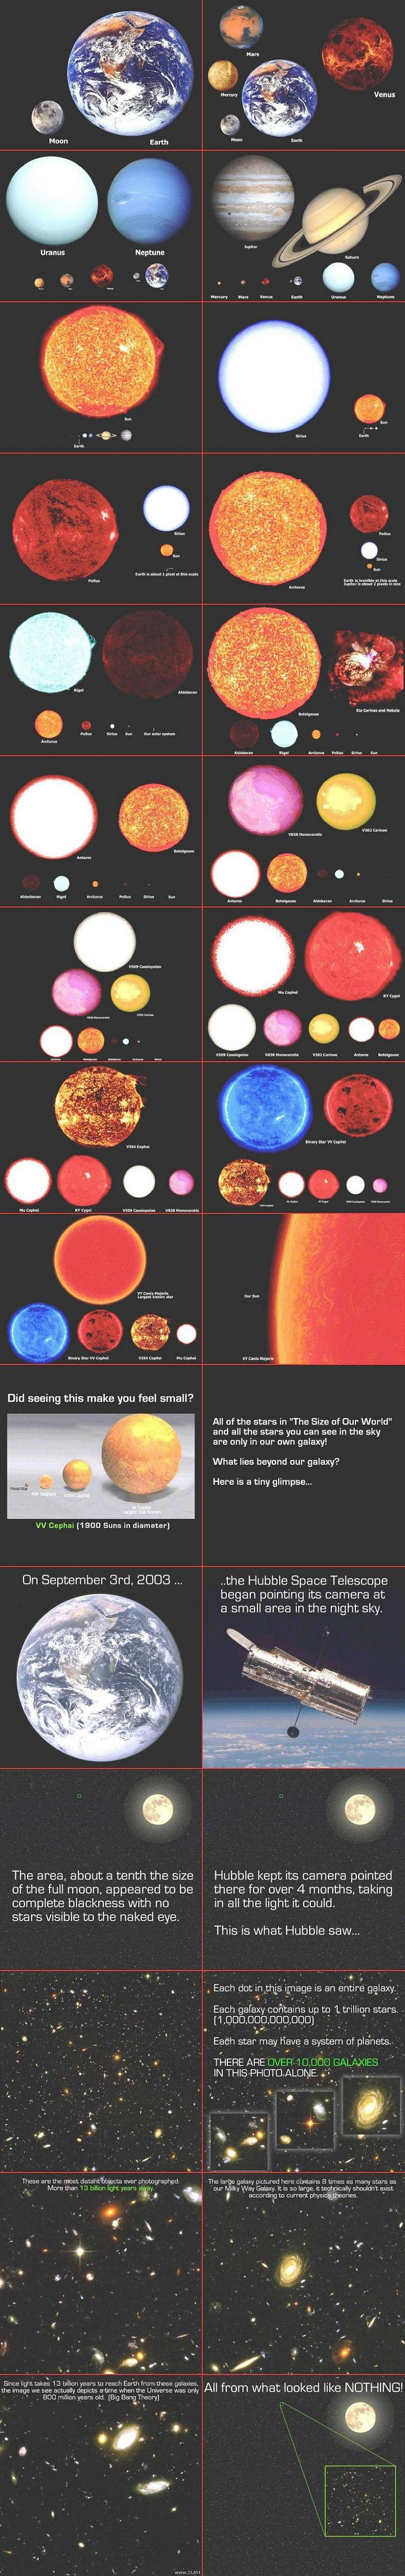 http://twistedsifter.files.wordpress.com/2010/06/size-of-the-earth-compared-to-the-rest-of-the-universe-space-planets-stars.jpg